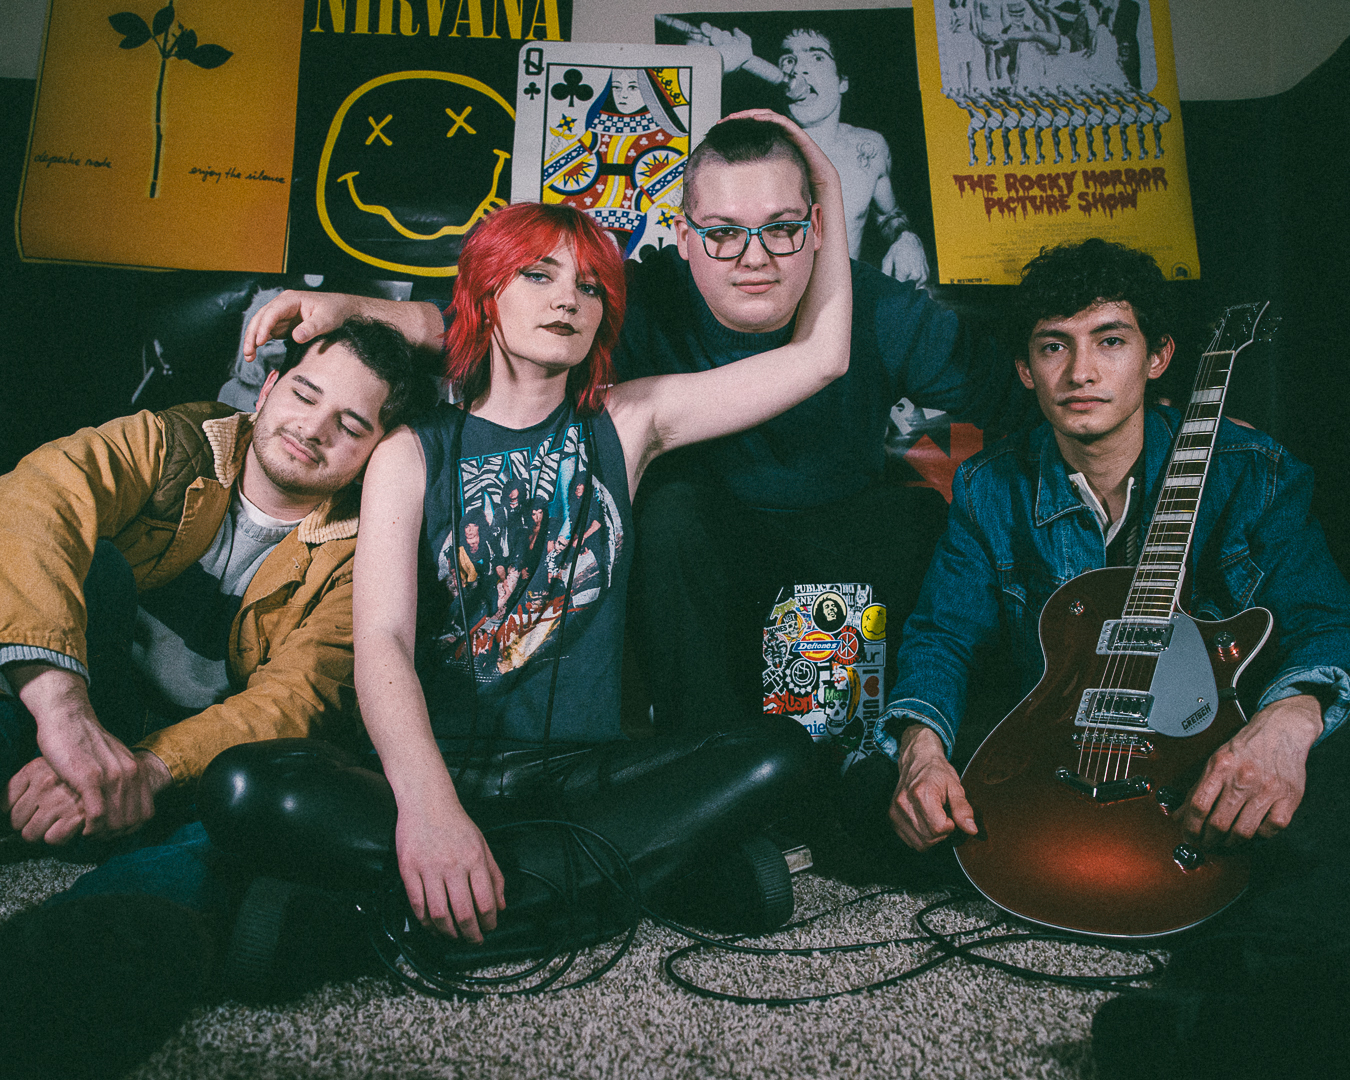 Velvet Skyline Announce Upcoming Single 'Circles' And LP 'What We Have In Common'